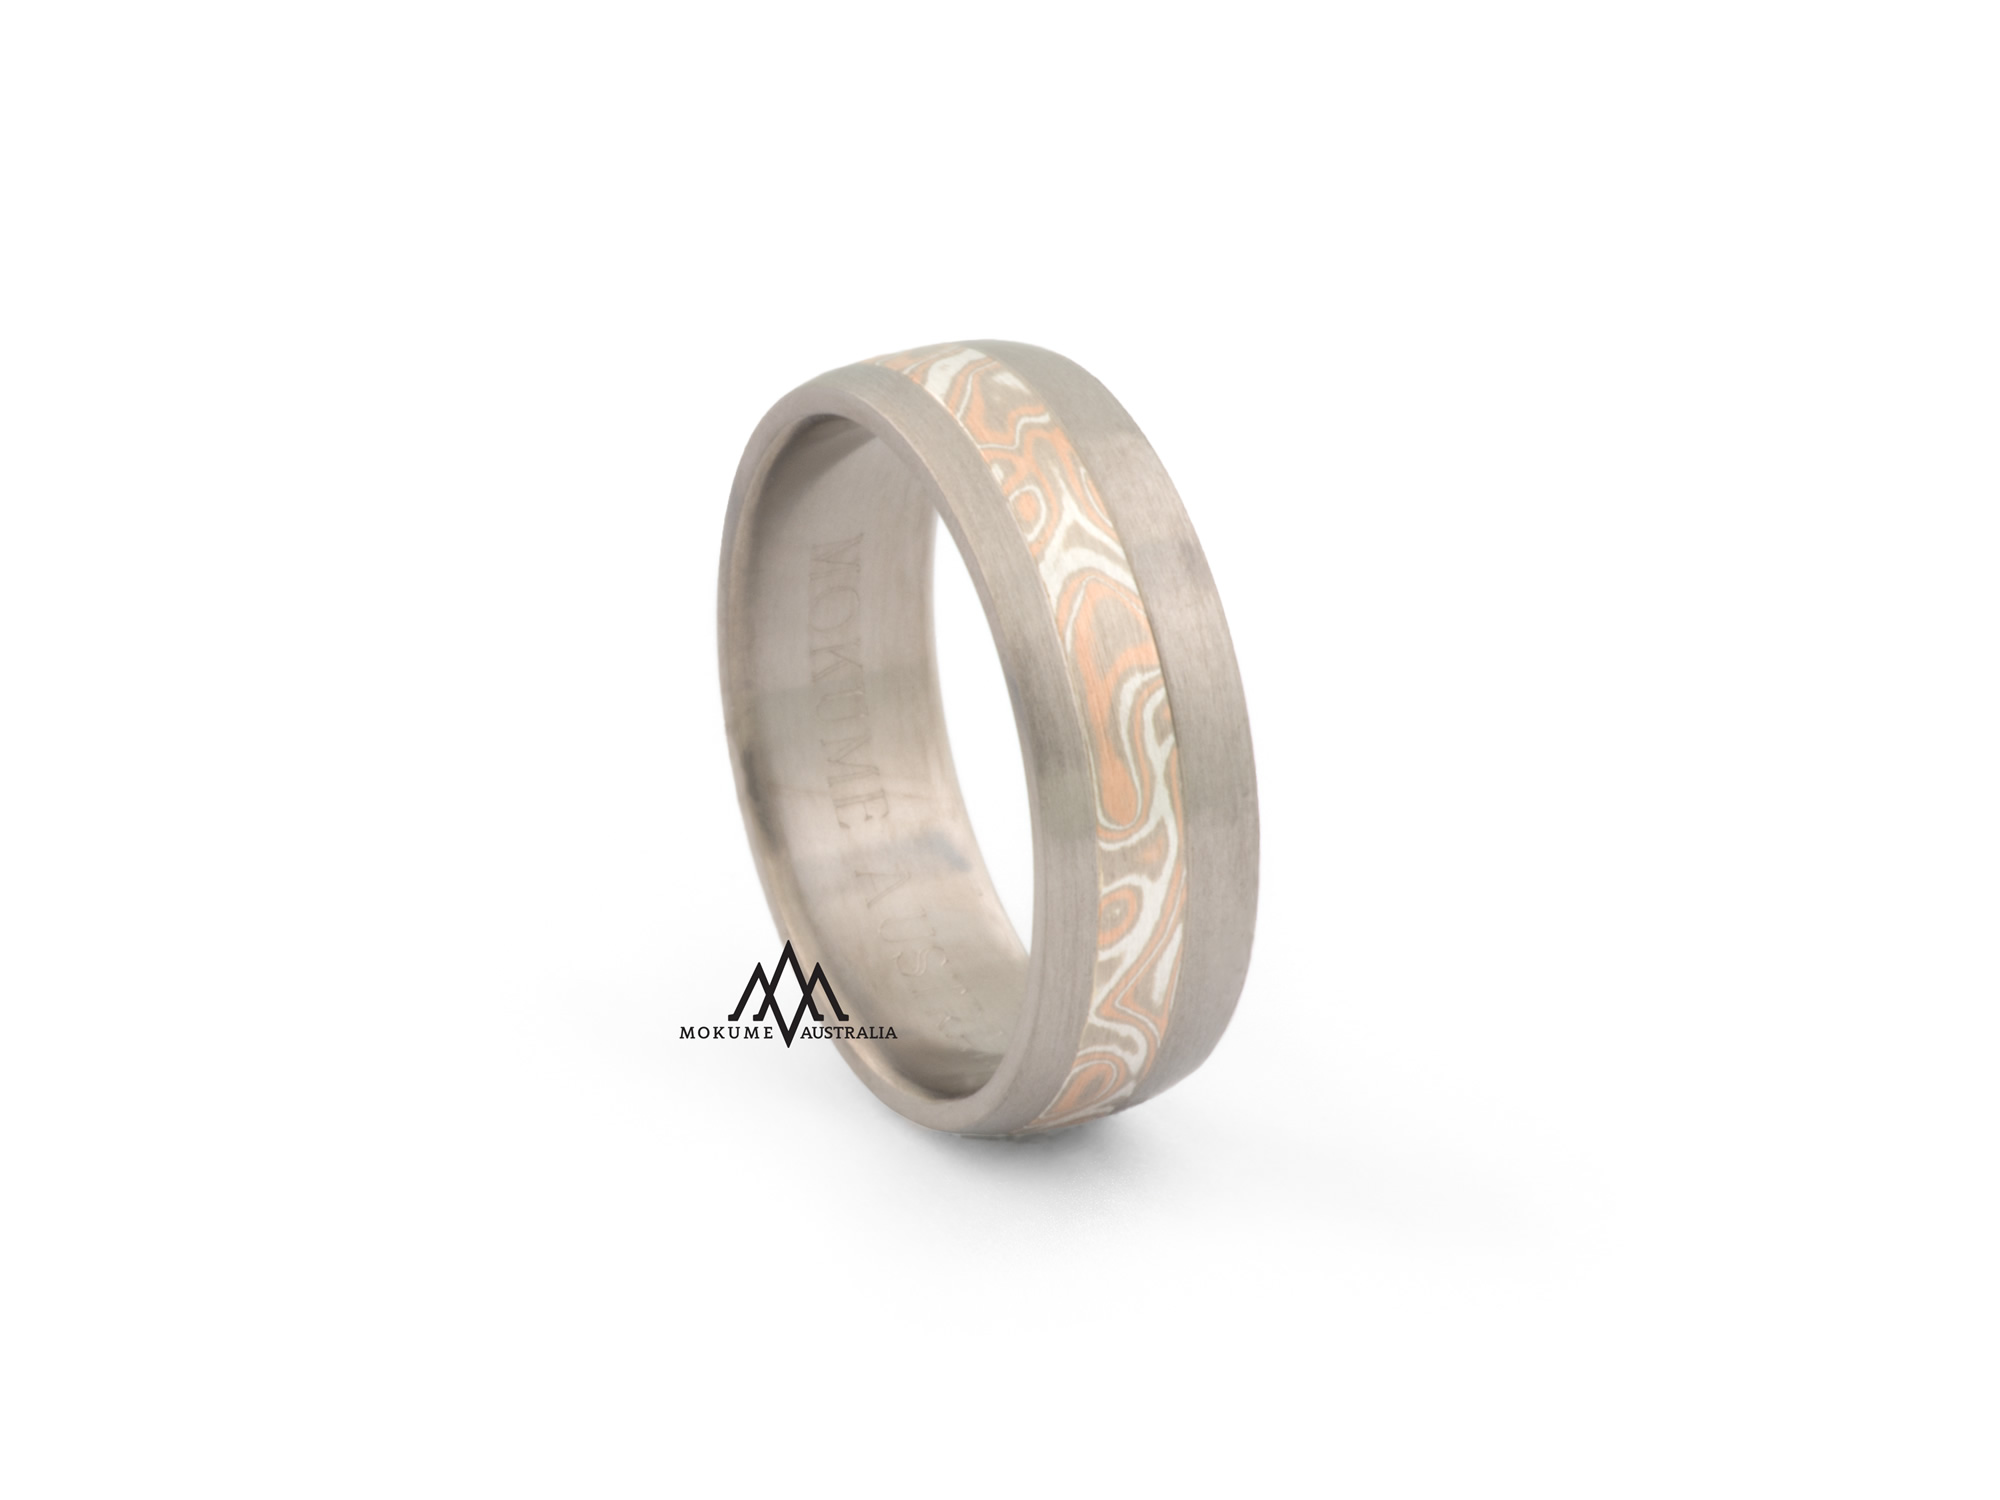 Grey/white/rose off-centre round mokume-gane ring